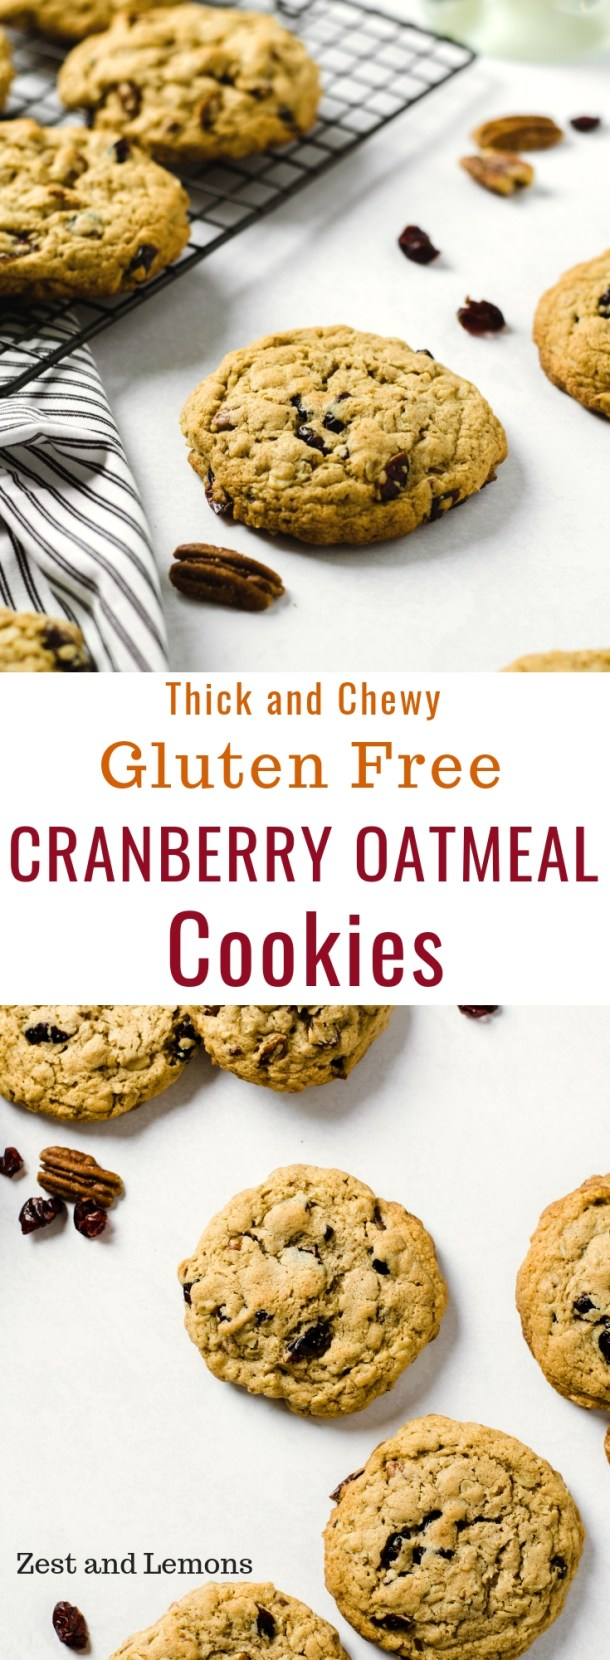 Thick and Chewy Gluten Free Cranberry Oatmeal Cookies. Loaded with dried cranberries, chopped pecans, and cashew butter - Zest and Lemons